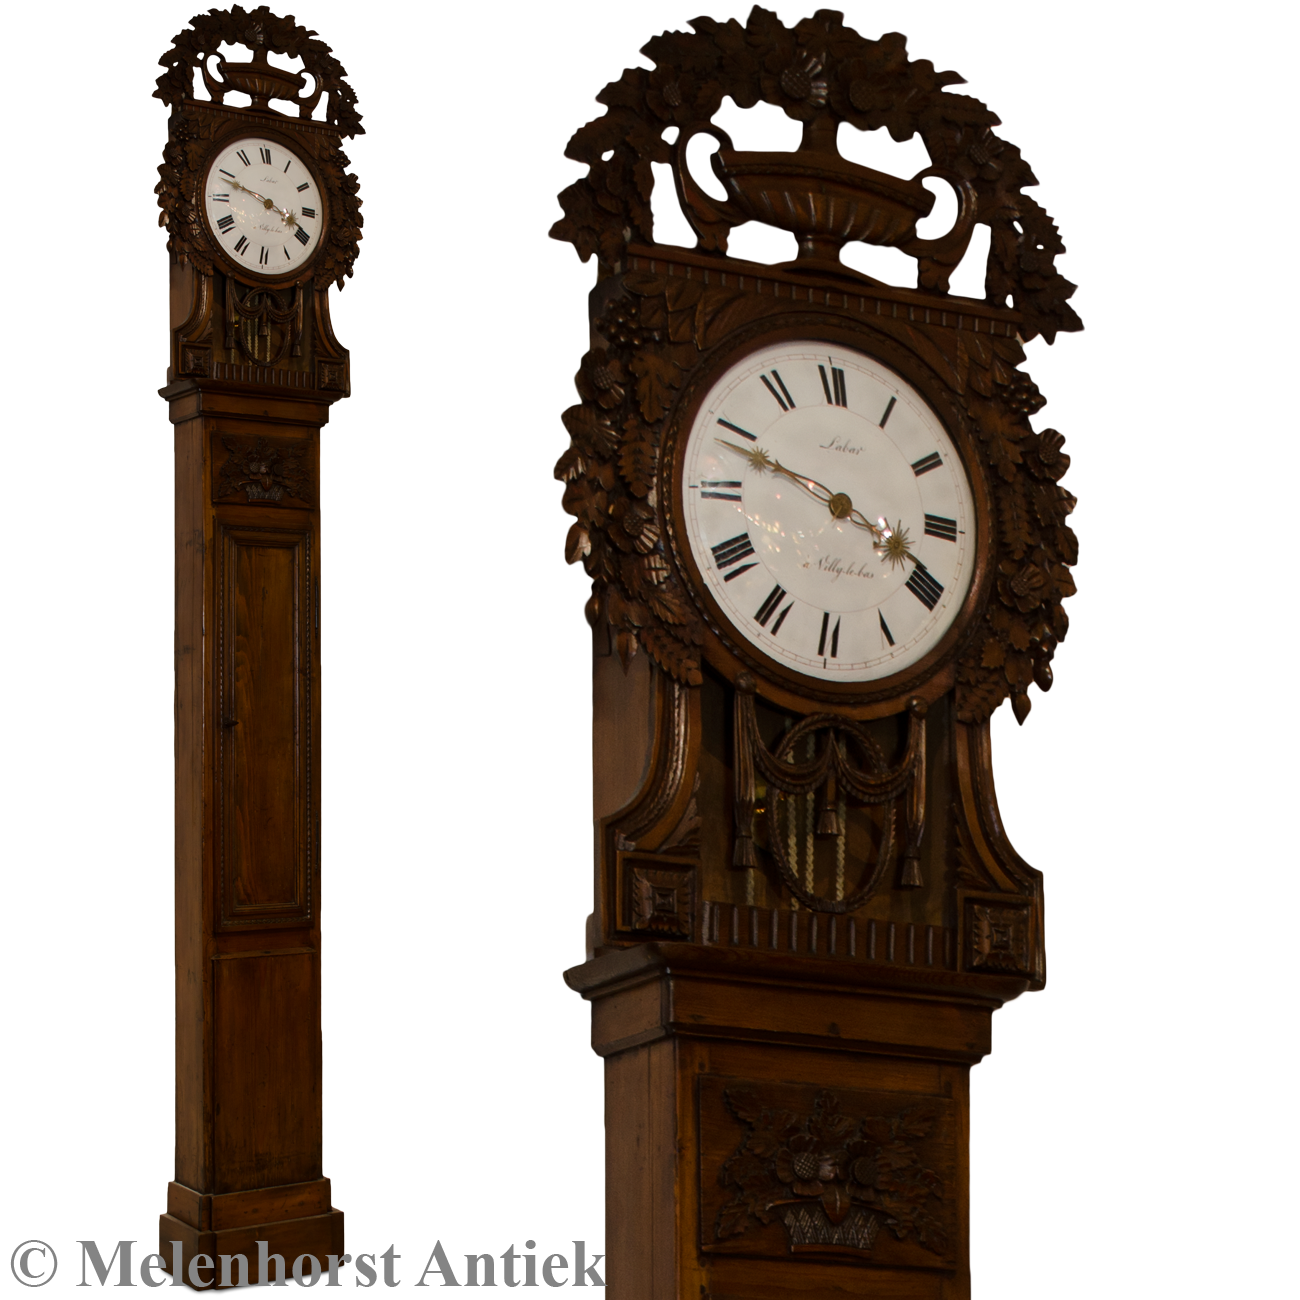 horloge de saint nicolas antike uhren melenhorst. Black Bedroom Furniture Sets. Home Design Ideas